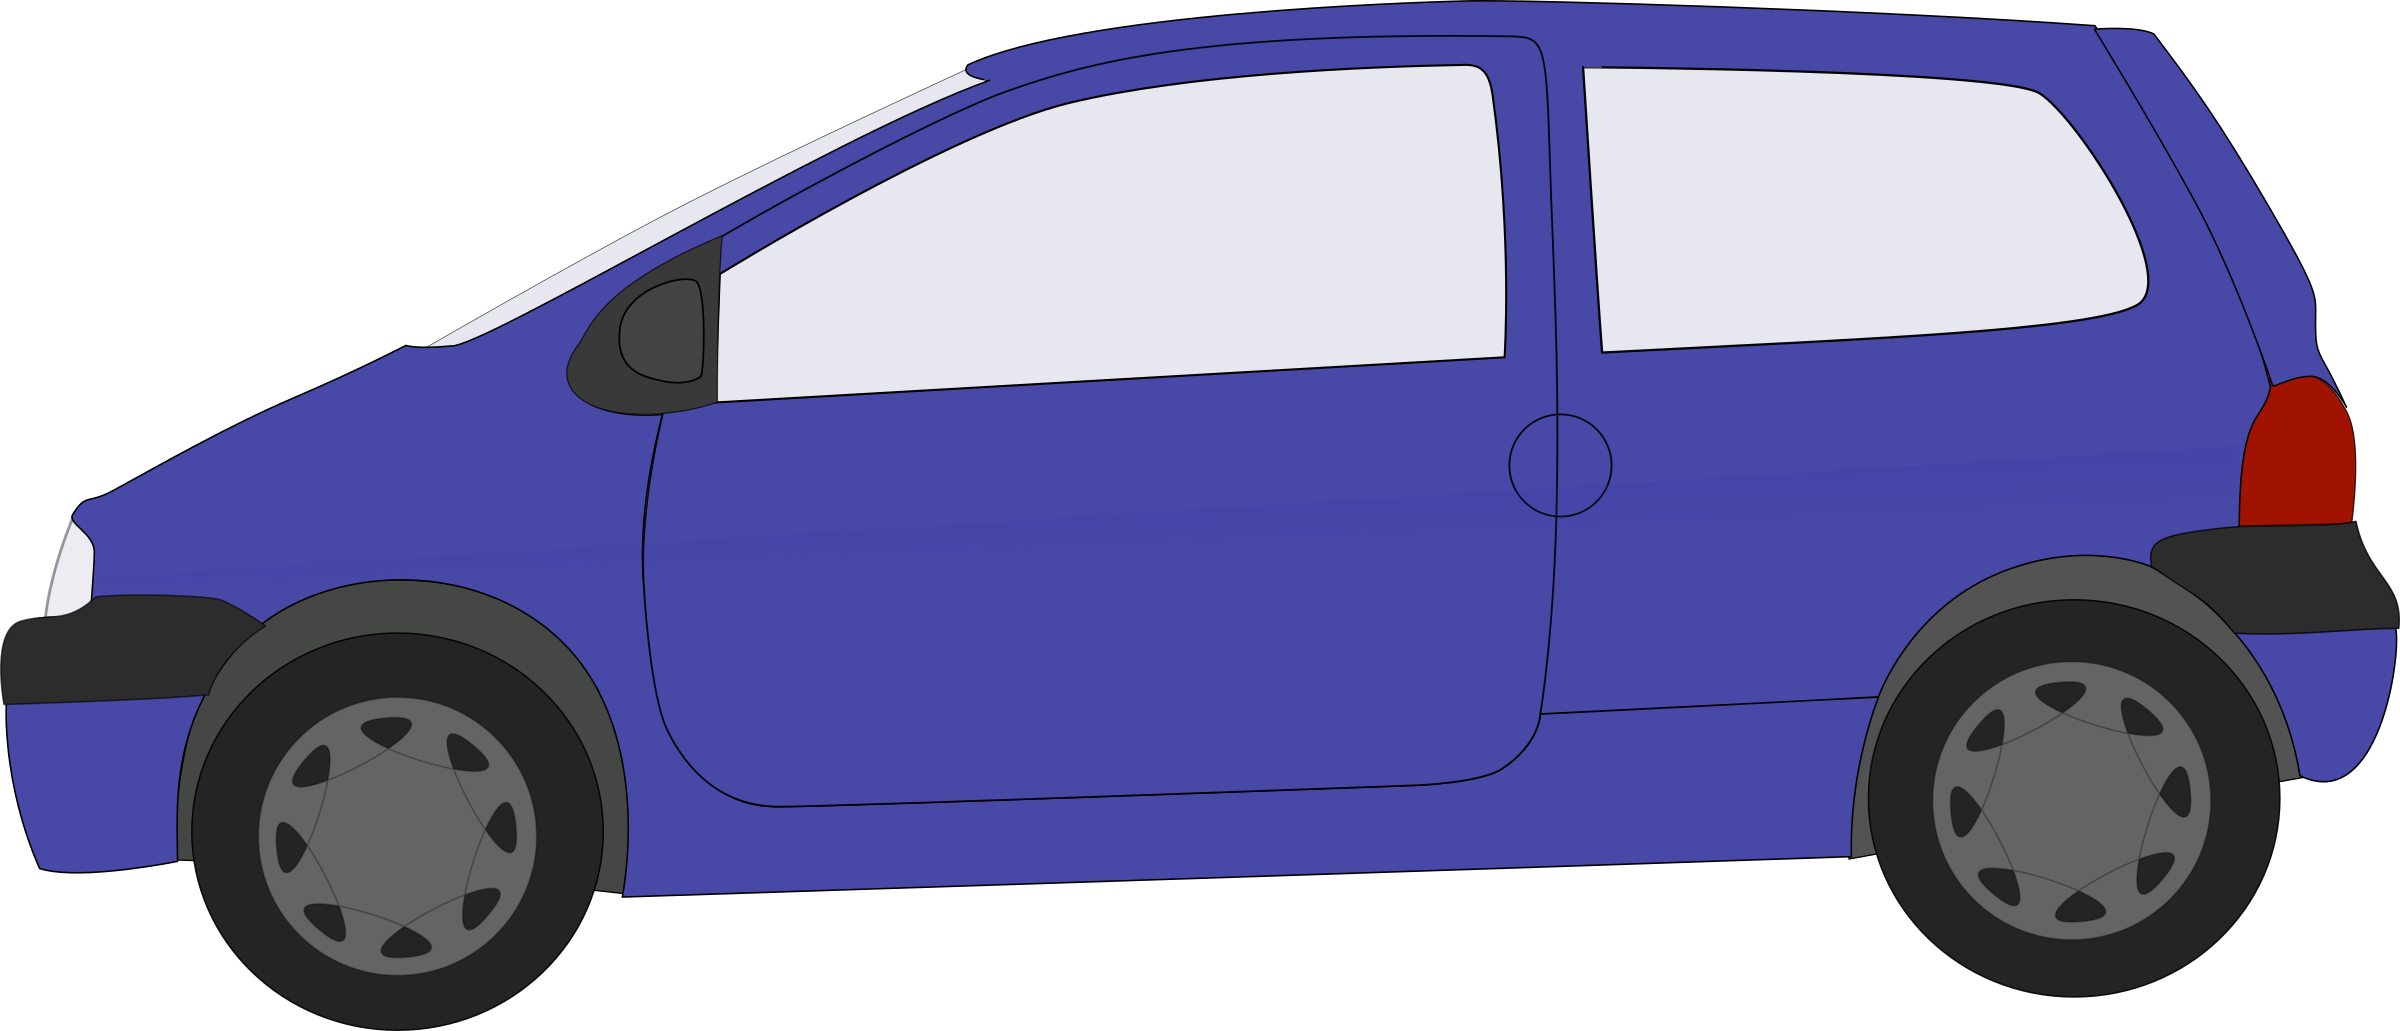 twingo by technoargia